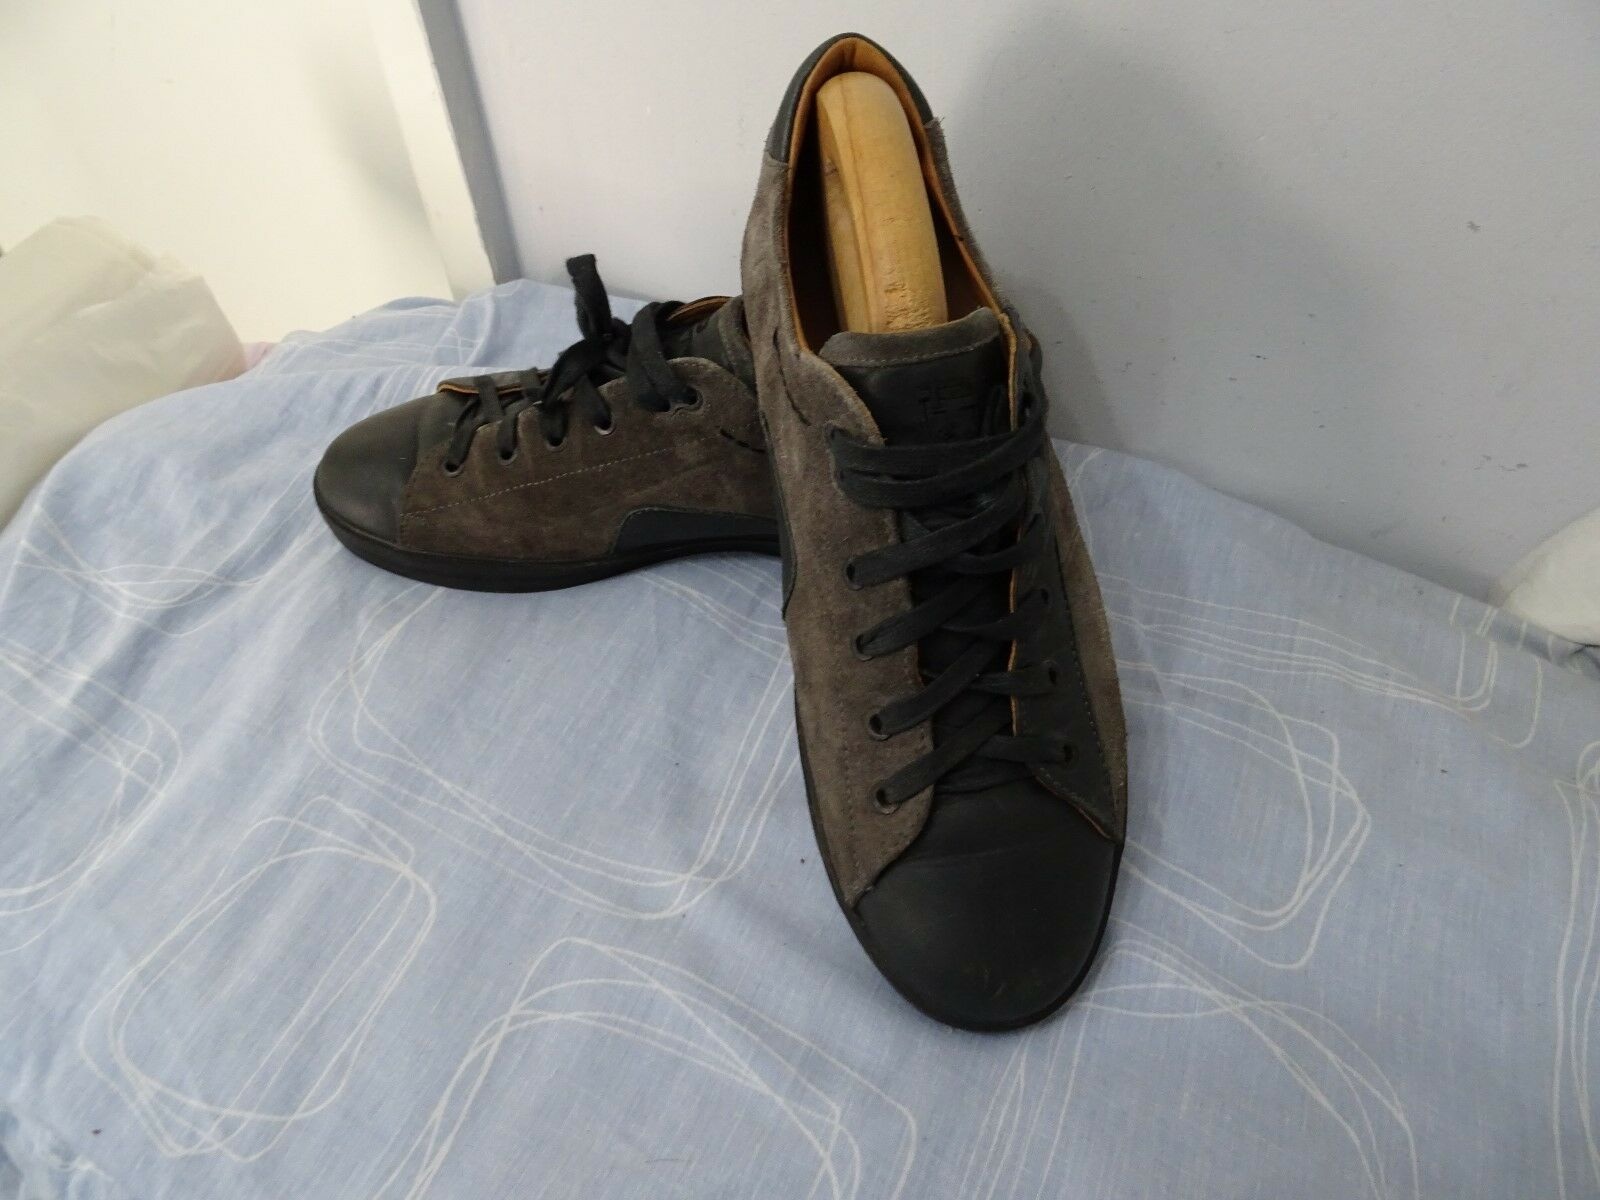 MENS PIRELLI MADE IN ITALY SUEDE LEATHER LACE UP GREY SNEAKERS SIZE UK 8